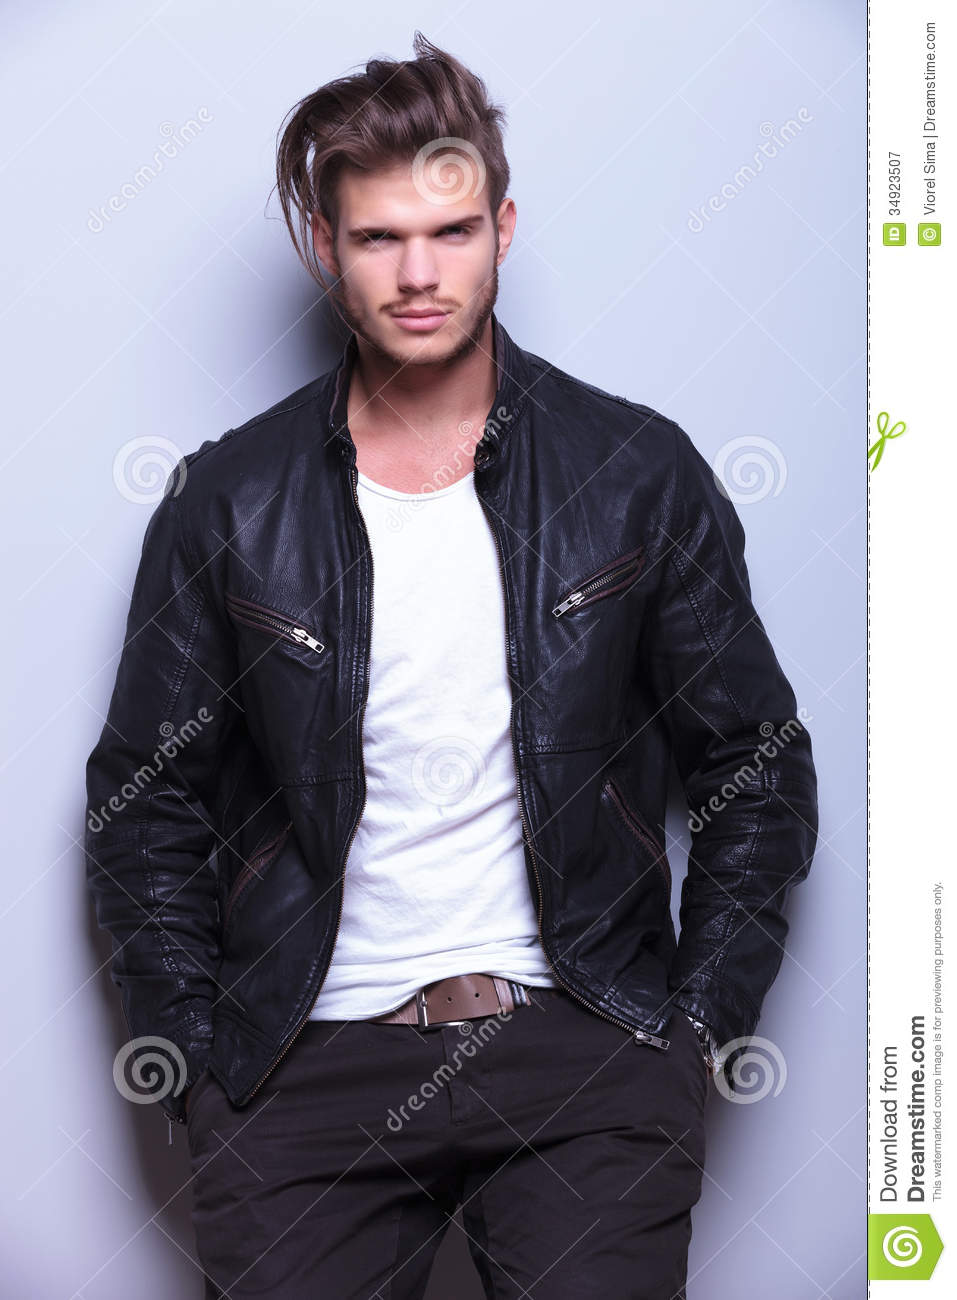 Cheap Clothing Stores Jacket Leather For Man